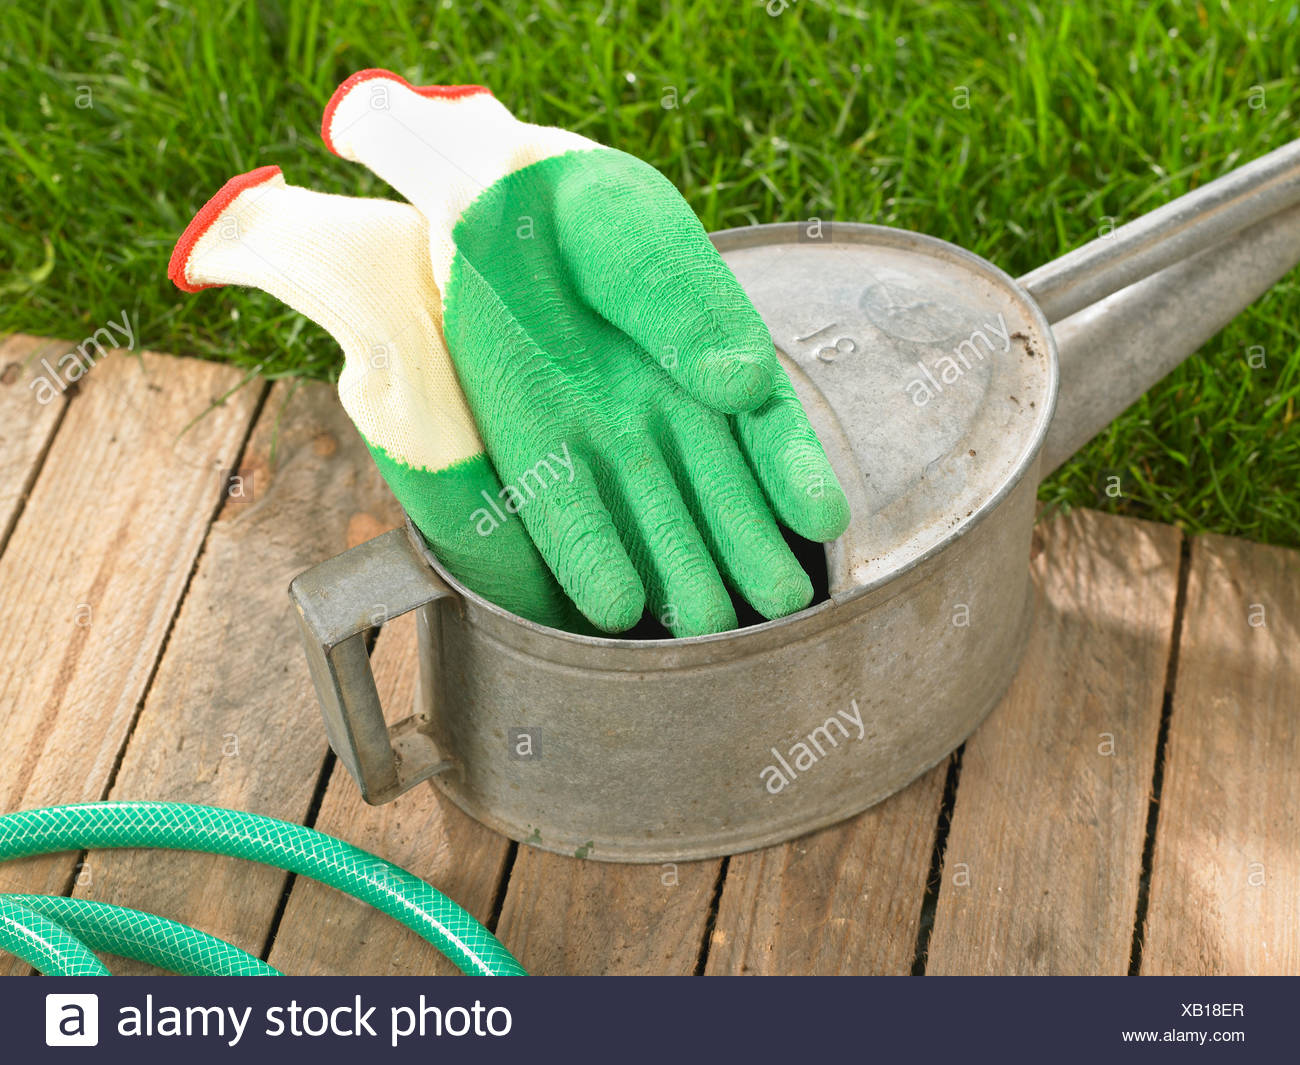 Pair of gardening gloves with a watering can - Stock Image